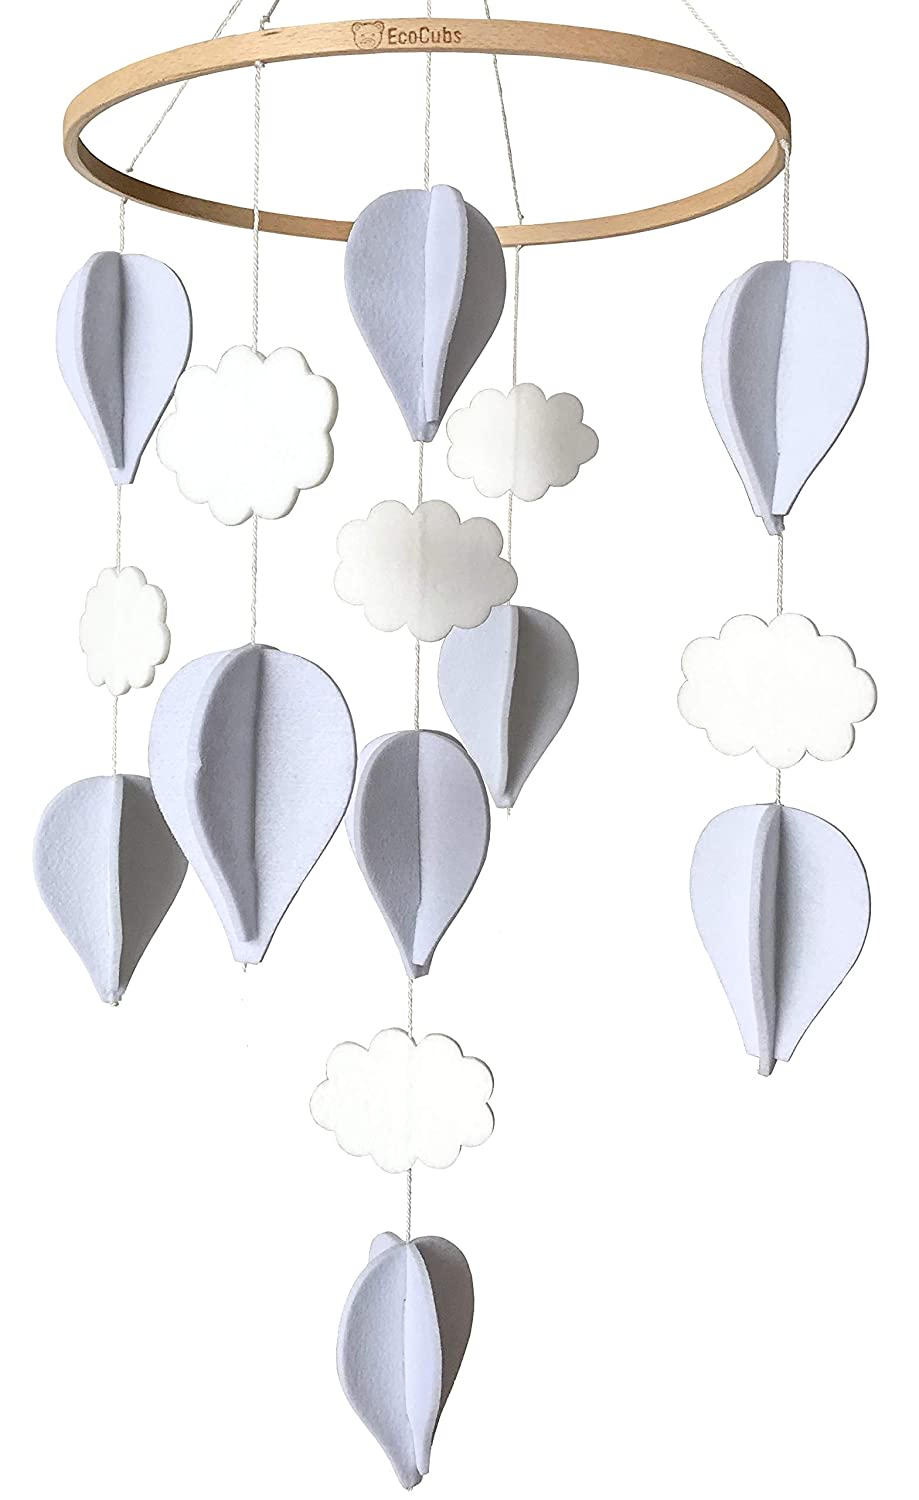 EcoCubs Baby Crib Mobile. Handmade. White and Pale Grey. Hot Air Balloons and Clouds. Eco Felt and Organic Beech Wood. Perfect Gender Neutral Nursery Decor. Simple and Modern